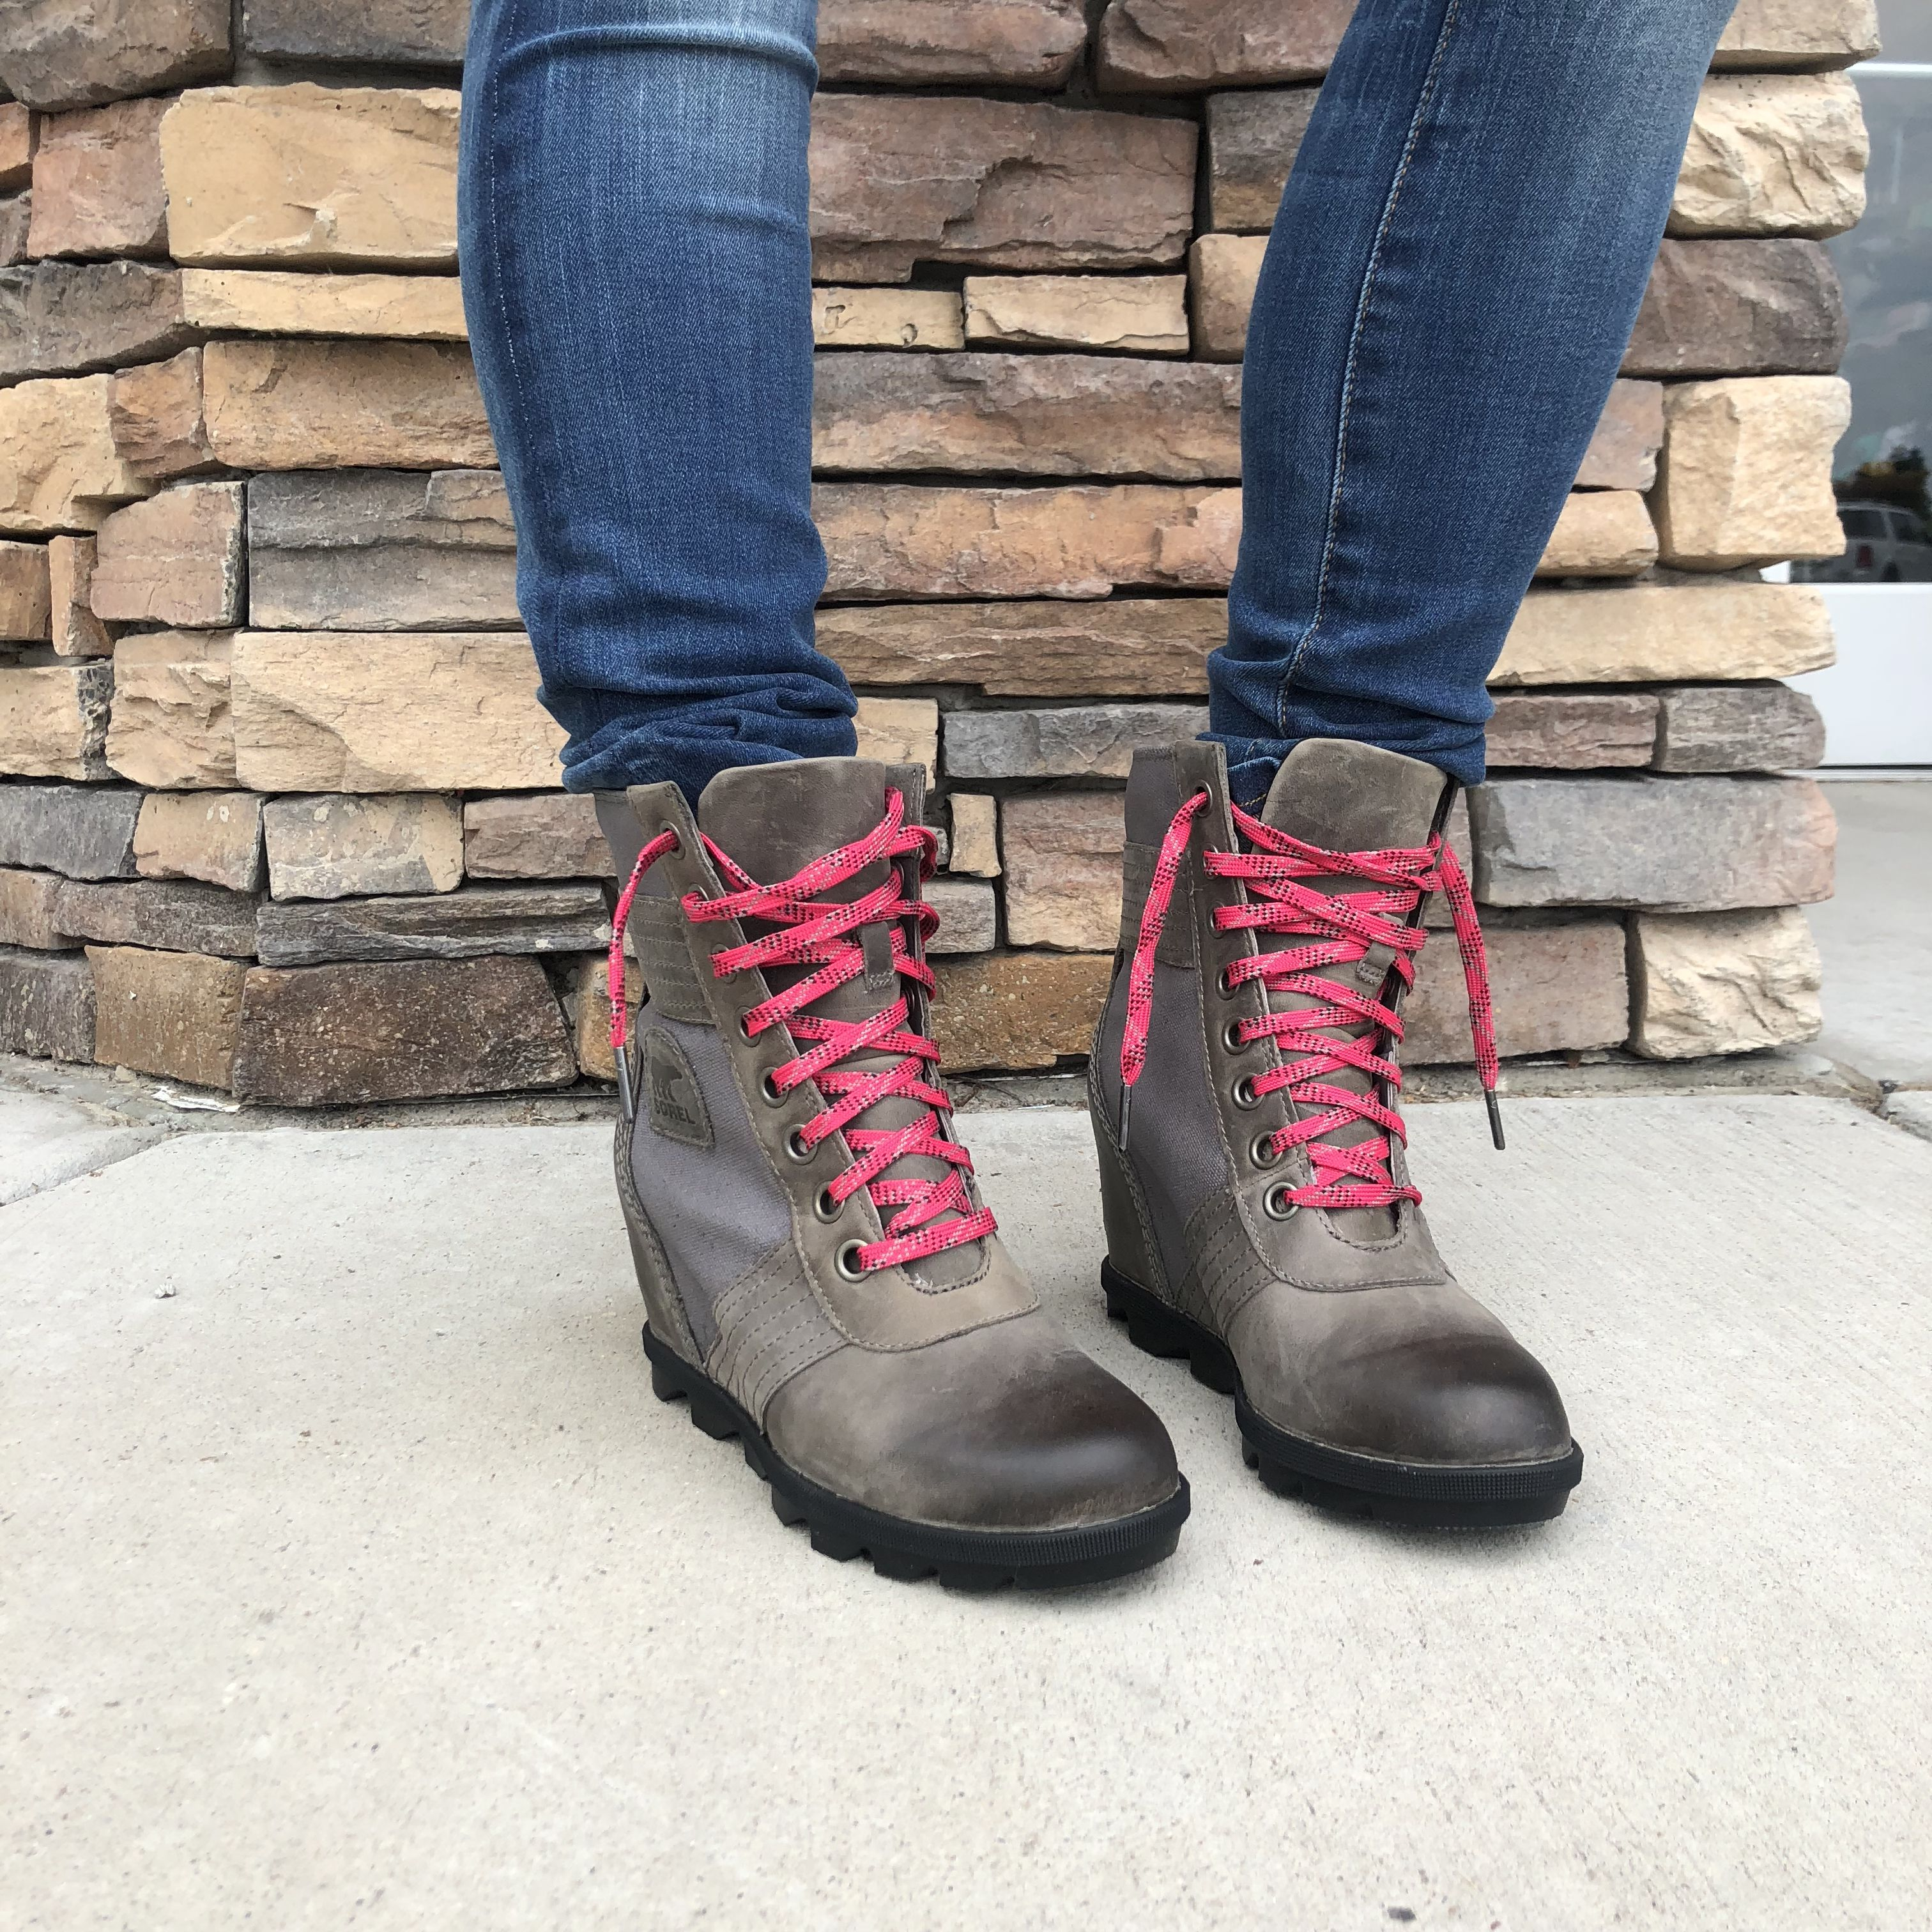 7c3b6e608f4 We love the amazing distressed leather offset with the pop of pink in the  laces. Combine that with the fact these are the MOST COMFY boots you will  ever own ...